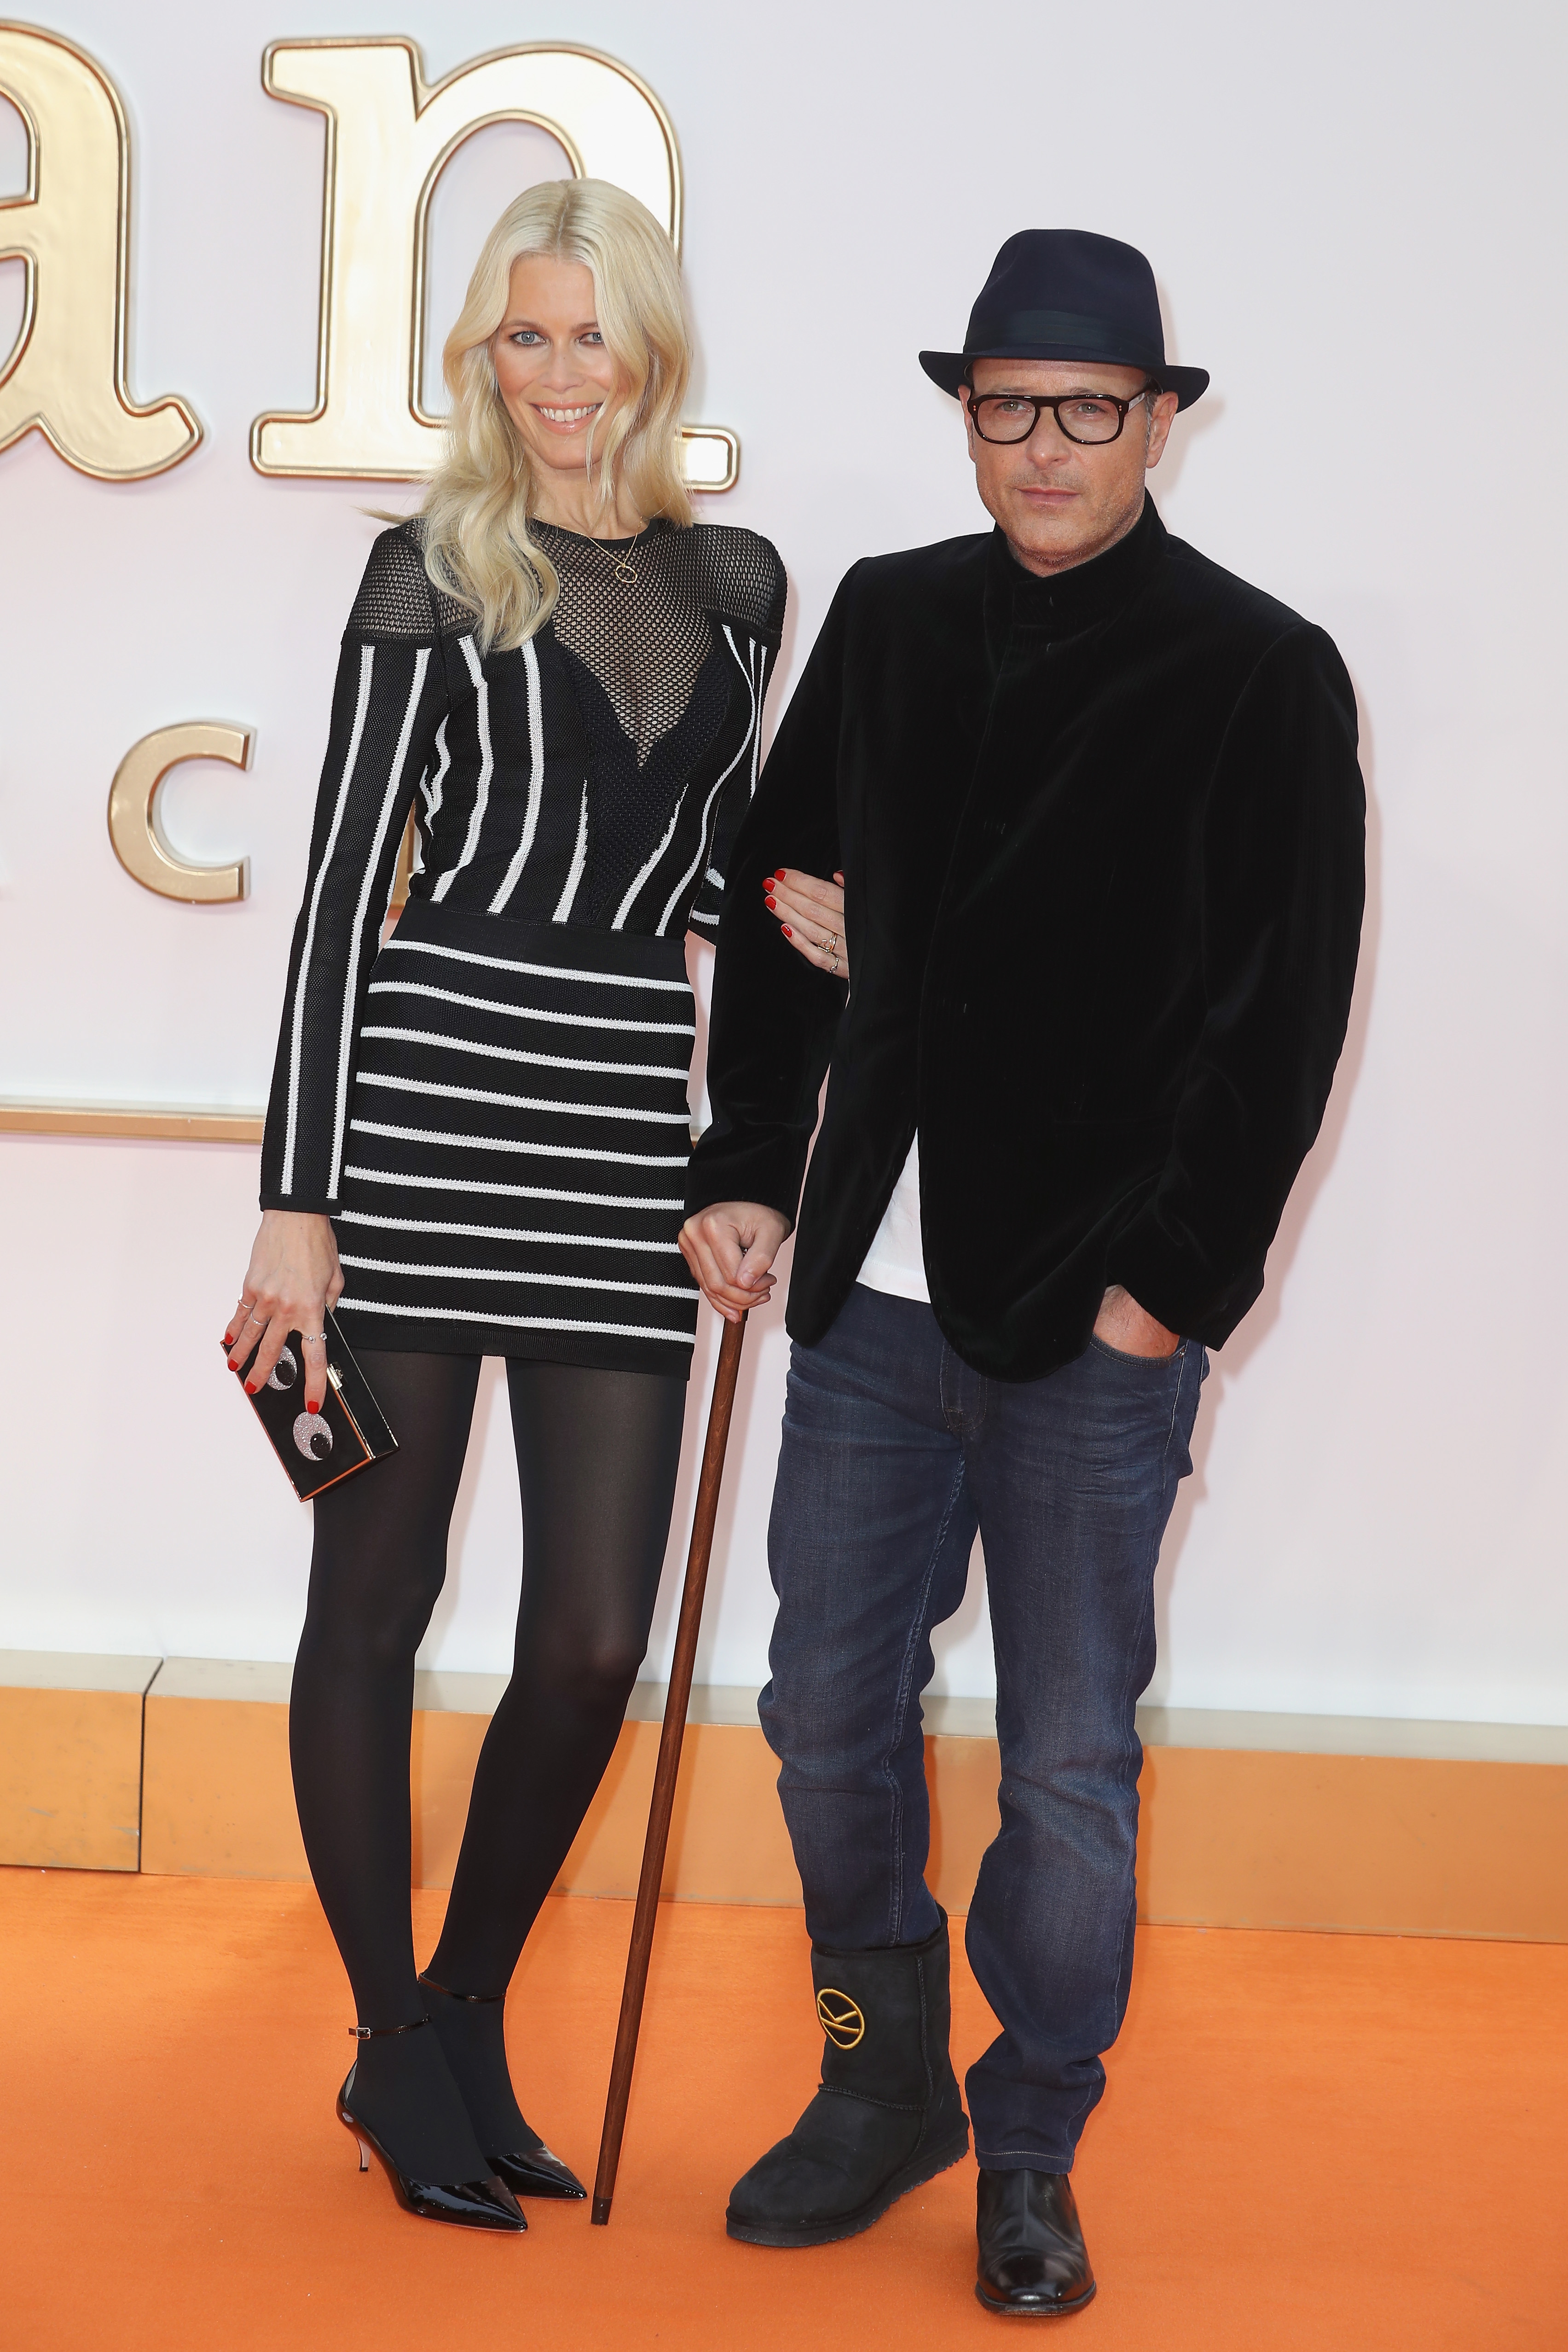 LONDON, ENGLAND - SEPTEMBER 18:  Director and writer Matthew Vaughn and Claudia Schiffer attend the 'Kingsman: The Golden Circle' World Premiere held at Odeon Leicester Square on September 18, 2017 in London, England.  (Photo by Chris Jackson/Getty Images)